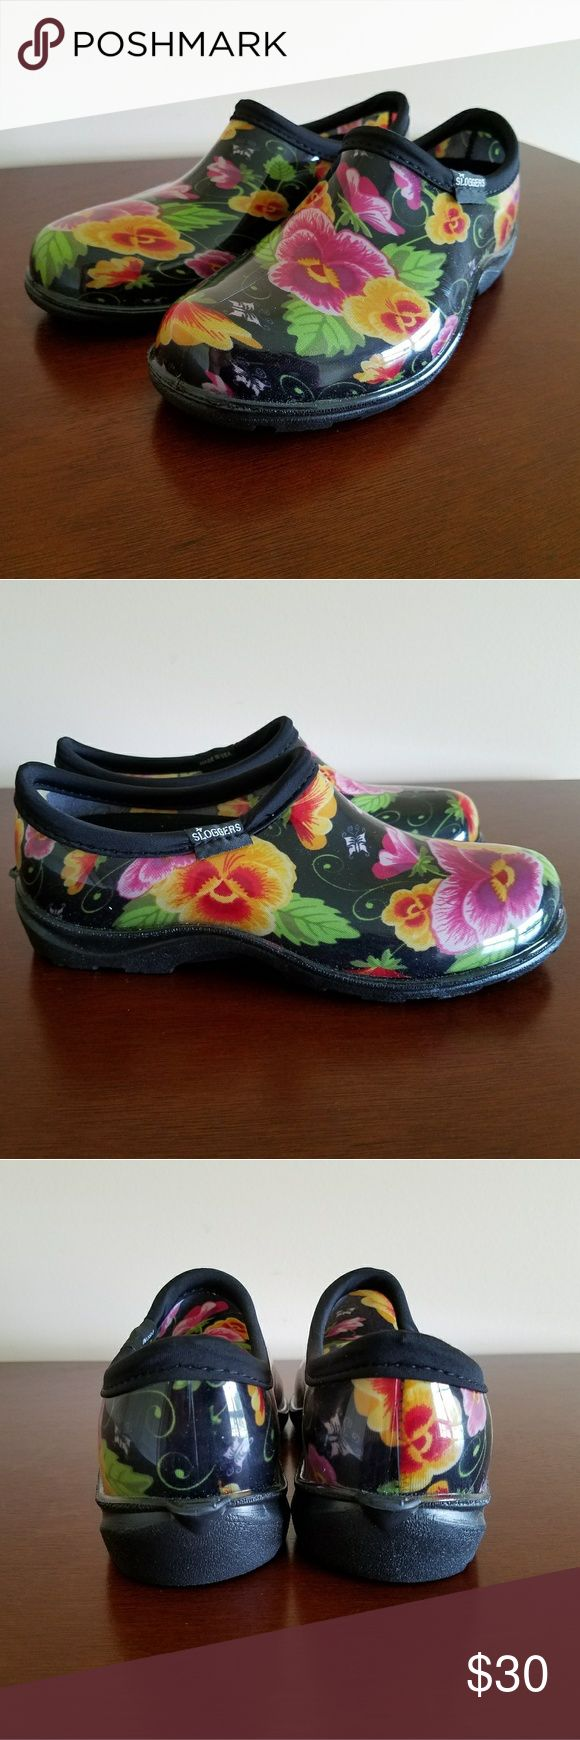 Sloggers rain / garden shoes Beautiful garden shoes waterproof women's size 6. Black embellished with colored flowers. Excellent preowned condition. sloggers Shoes Winter & Rain Boots